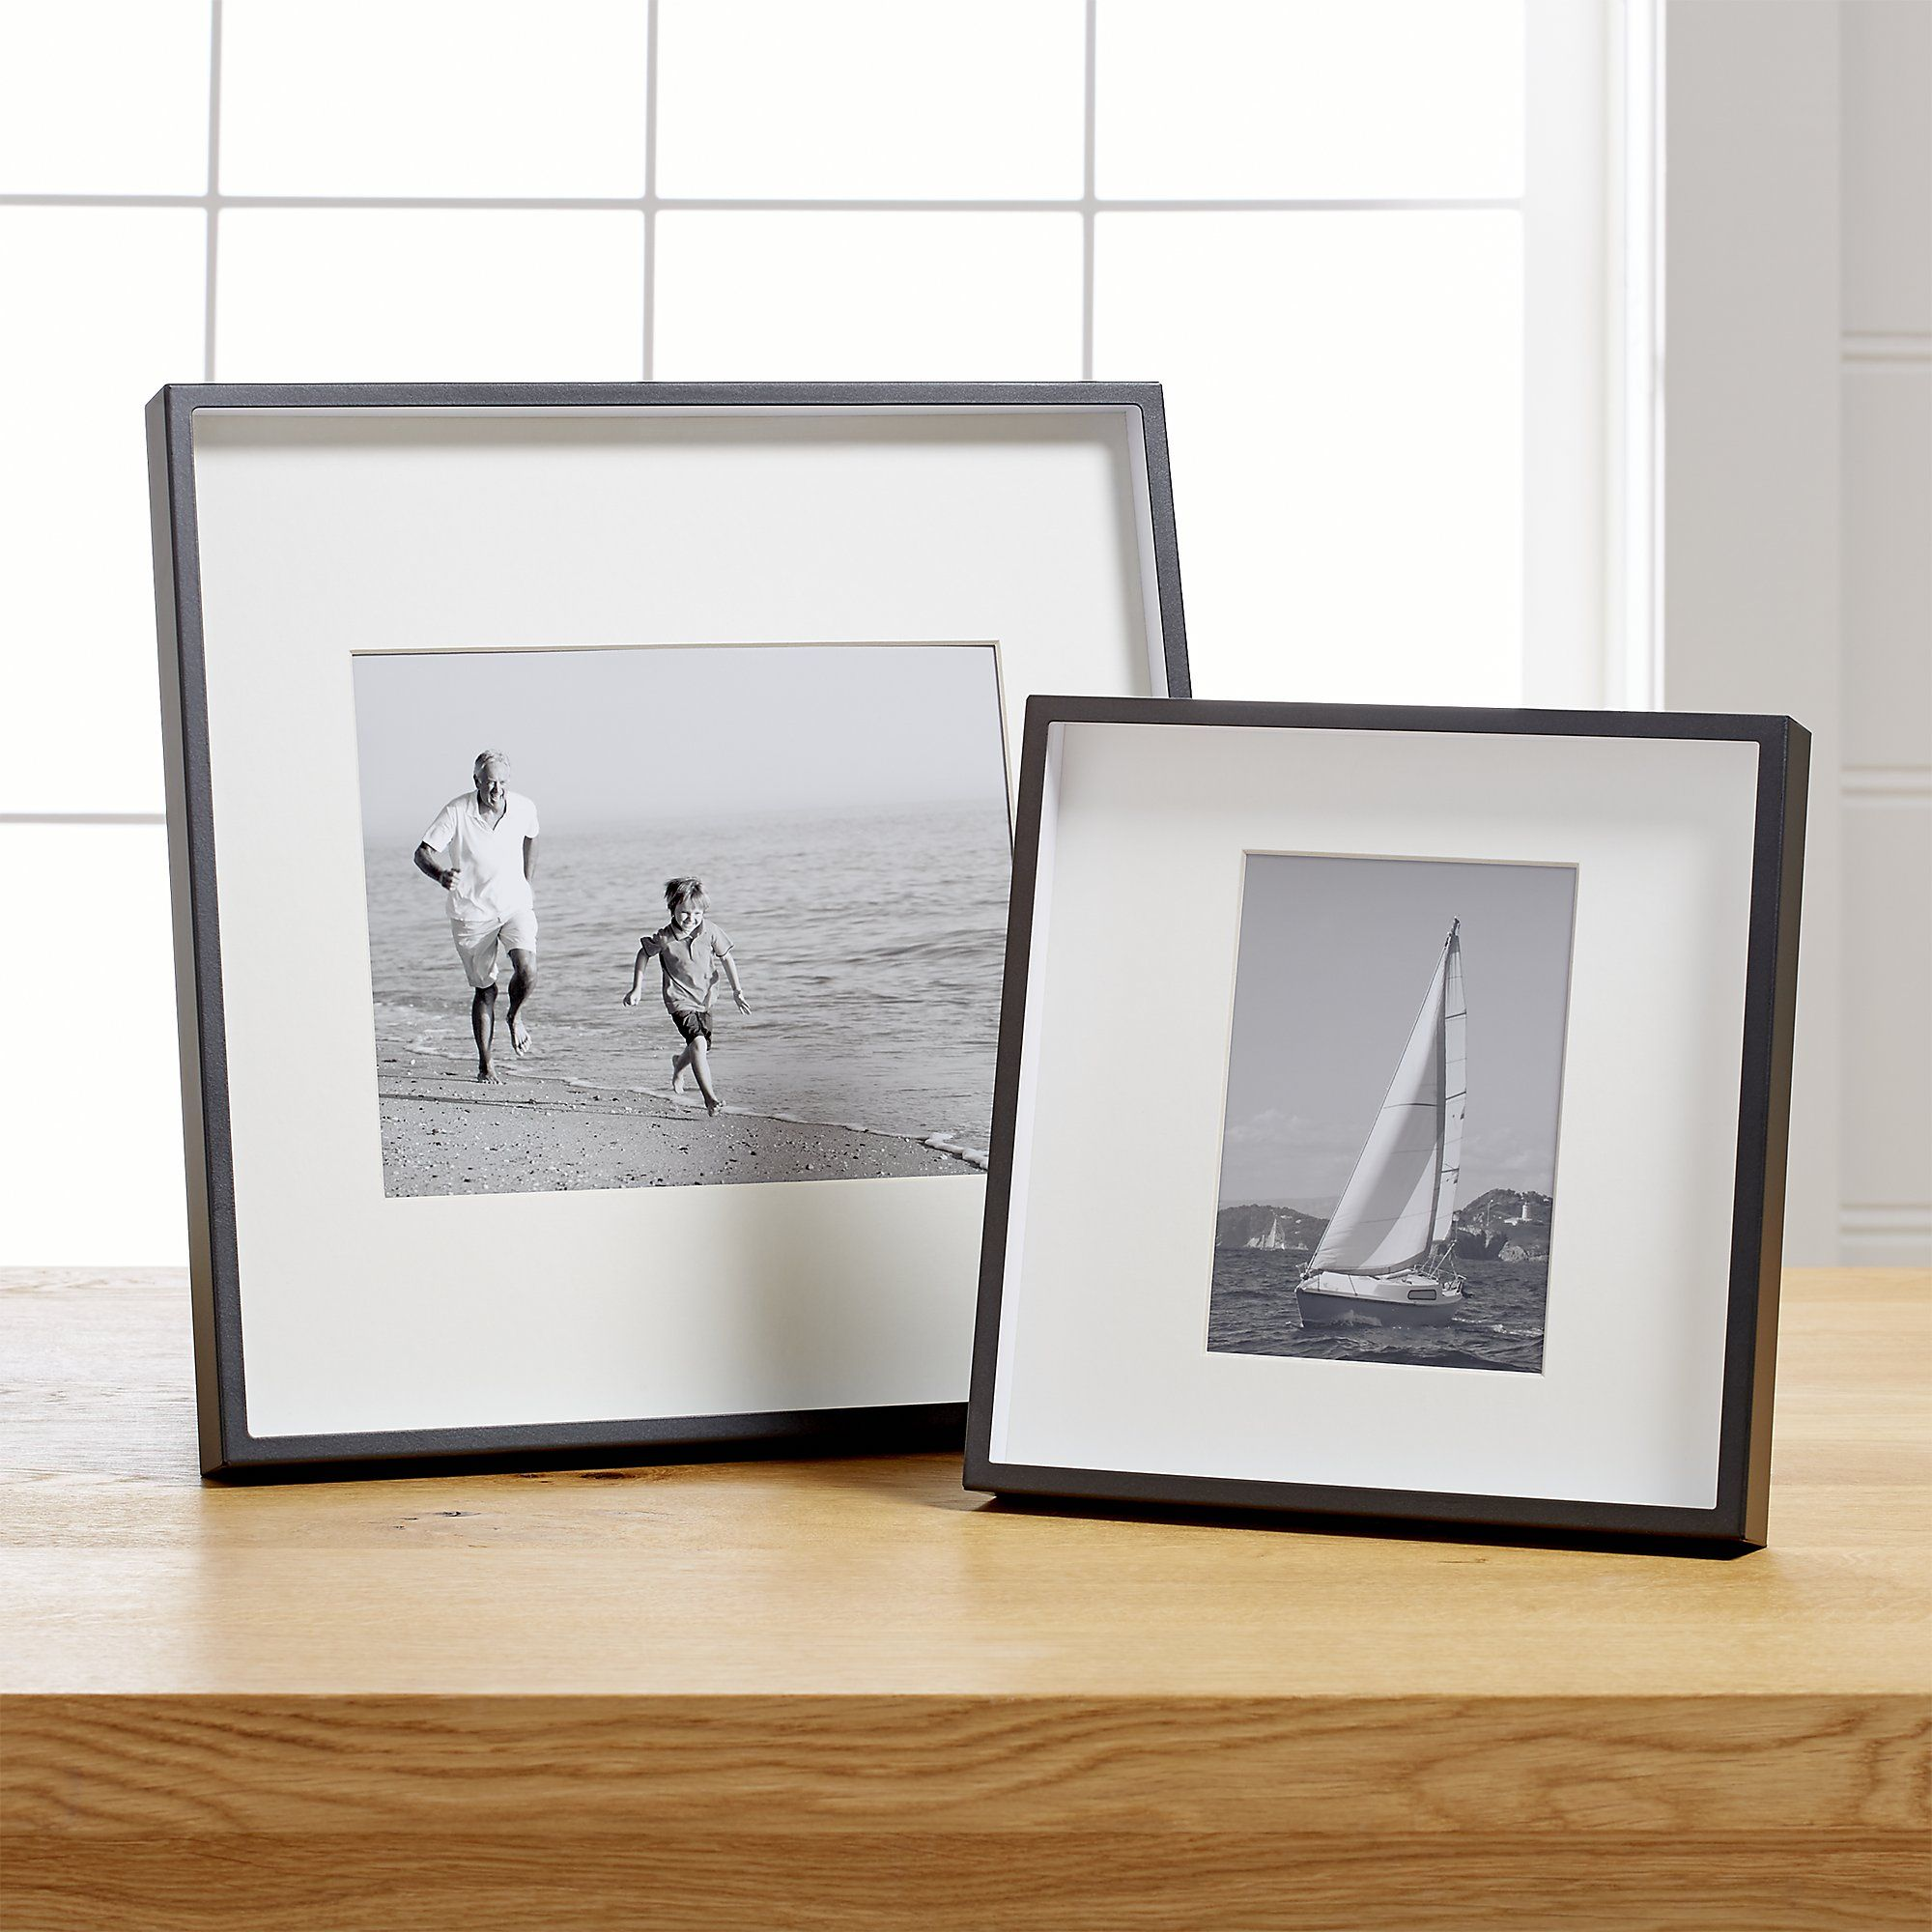 photos blog how custom to frames frame large art ways oversized and style sizes mat mats framed